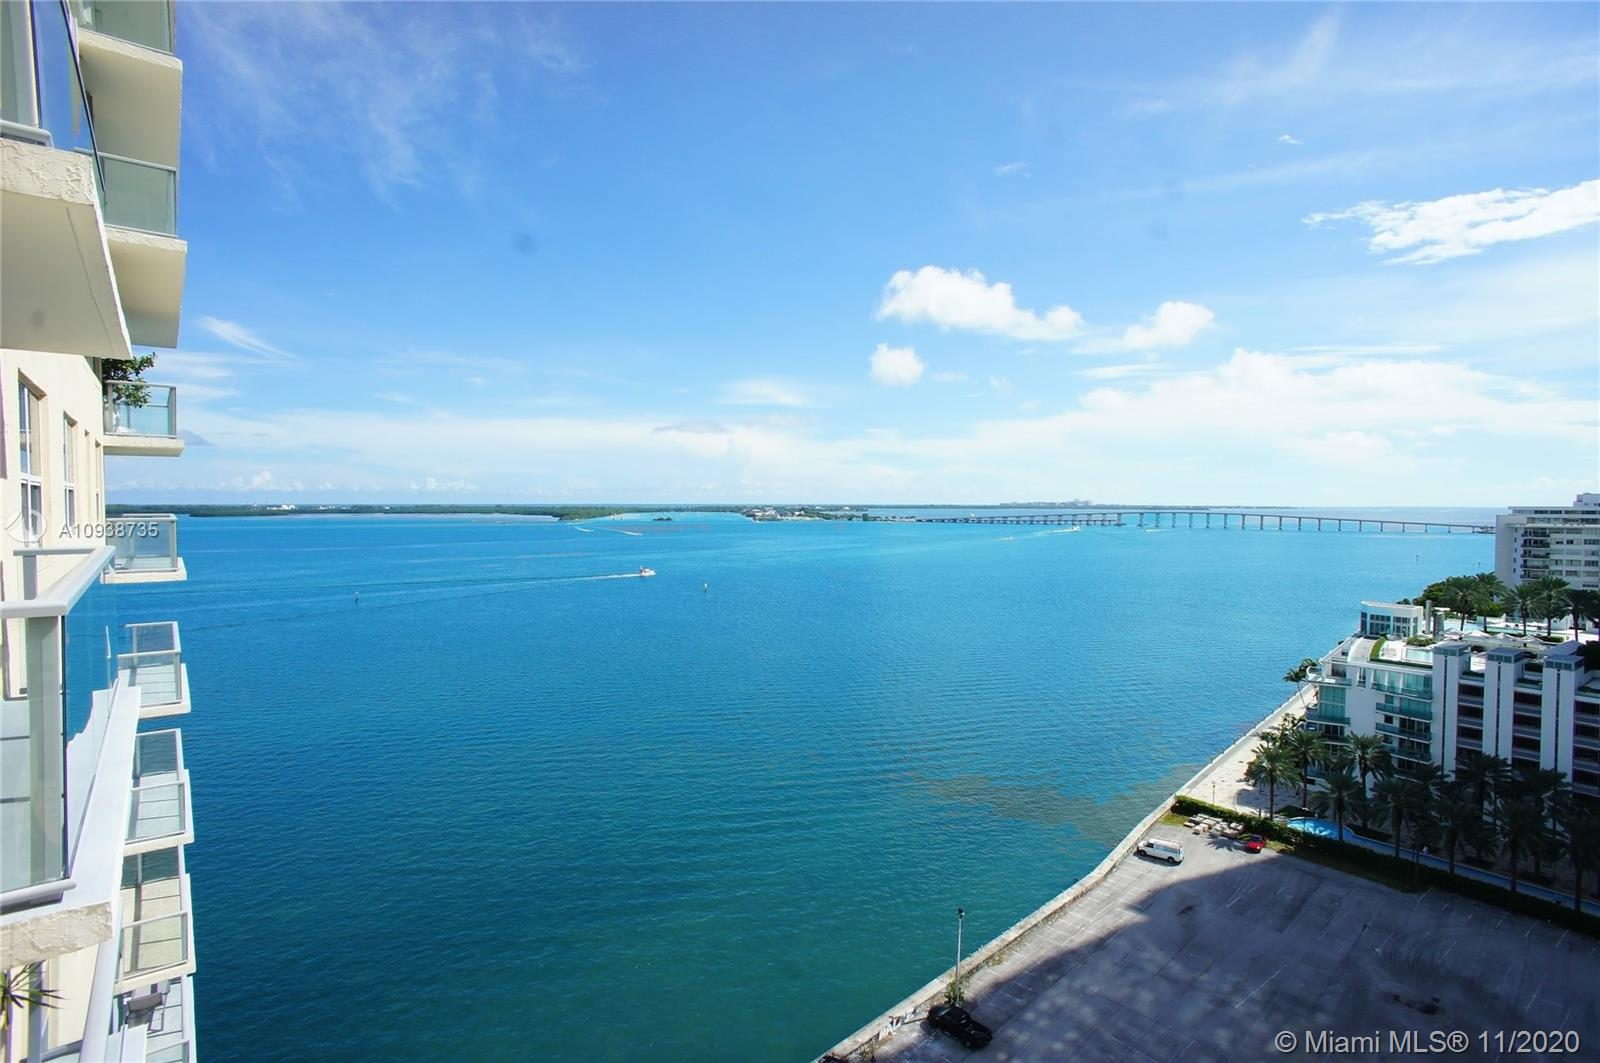 Amazing Water Views to the Ocean, Biscayne Bay, and the city. Dark wood floors. Brand new Stainless Steel Appliances, upgraded bathroom, brand new closet cabinetry. Amenities: Large Pool by the Bay, tennis court, covered parking, fitness center, hot tub, sauna, restaurant on-site, convenience store, Racquetball courts, waterway, and much more. Extra storage is available. Easy access to I-95. downtown, Key Biscayne, Airport, and Miami Beach.